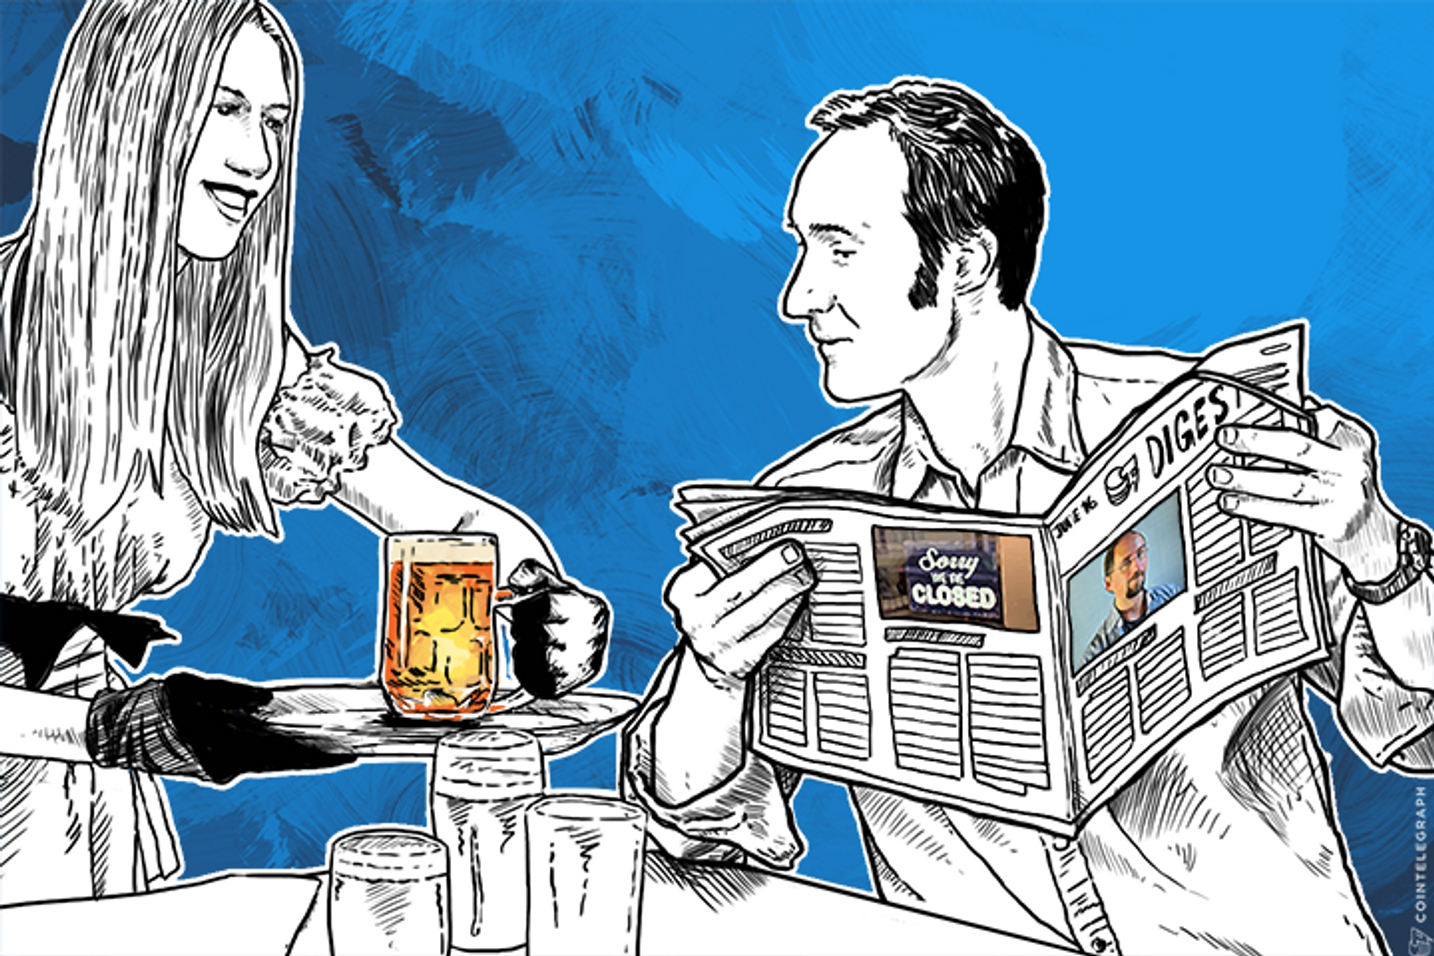 JUN 16 DIGEST: Goldman Sachs to Launch LendingClub Competitor; BTC Guild Leaves New York